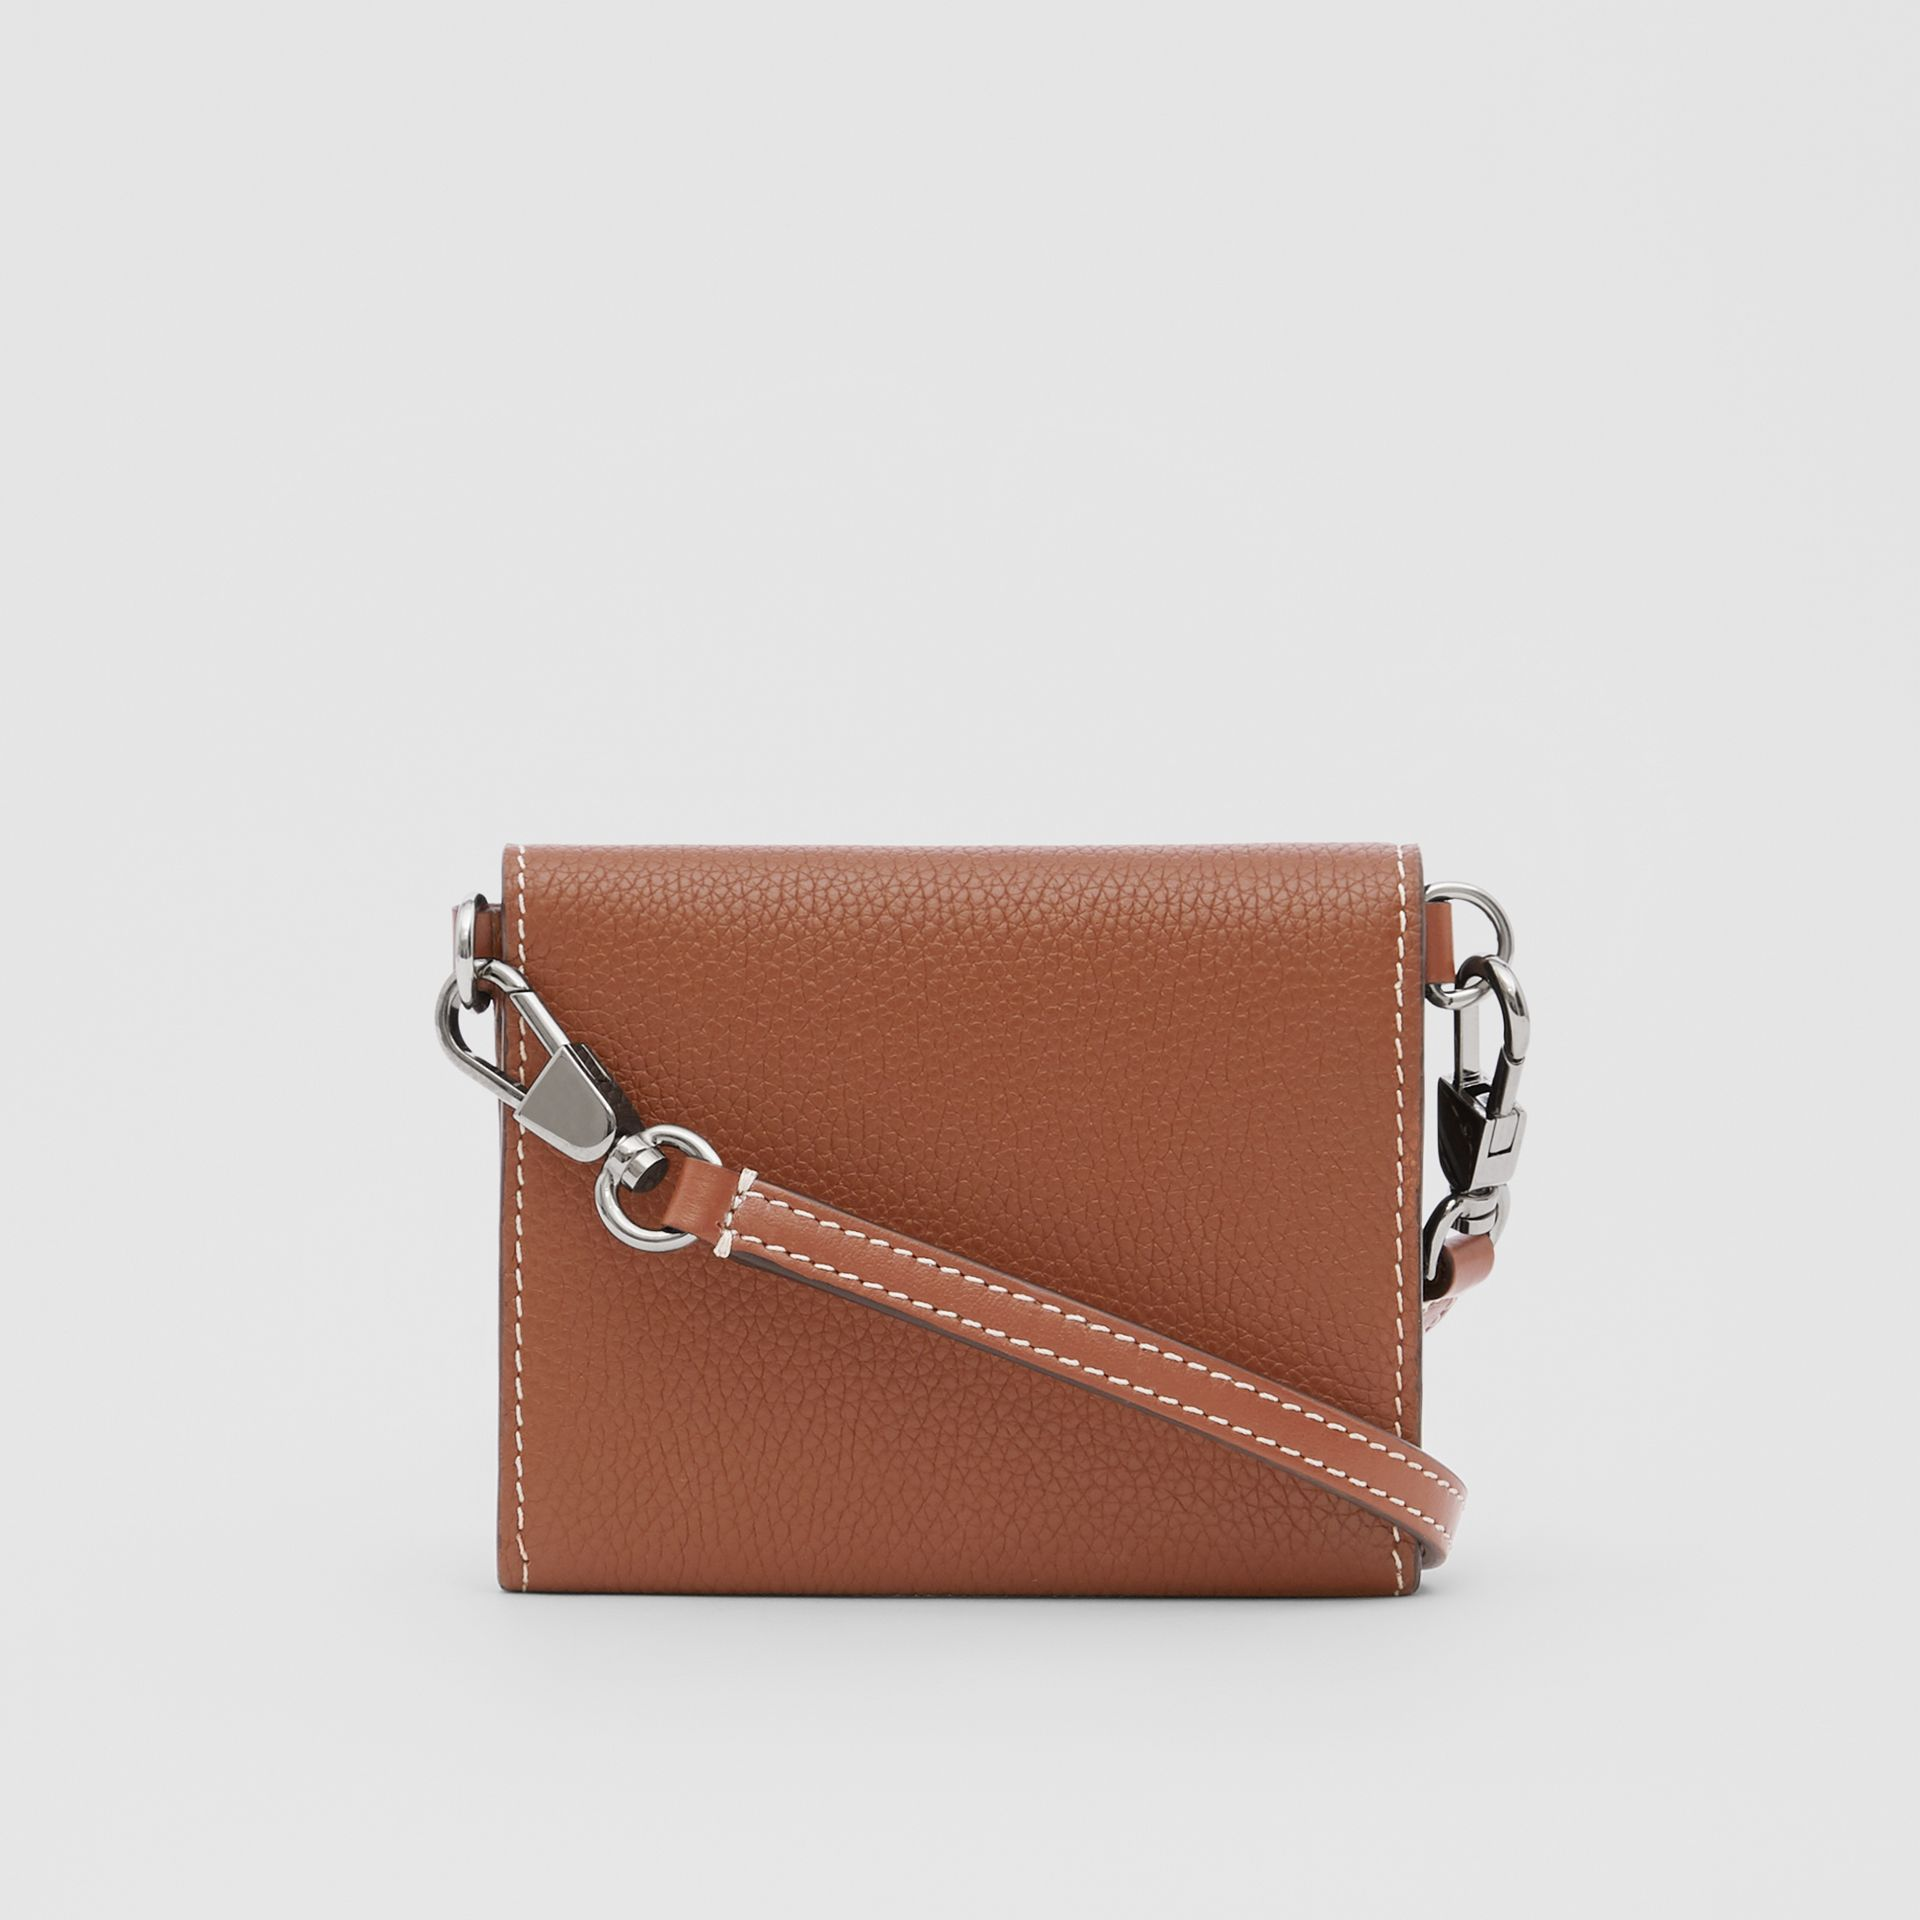 Small Grainy Leather Wallet with Detachable Strap in Tan | Burberry United Kingdom - gallery image 9